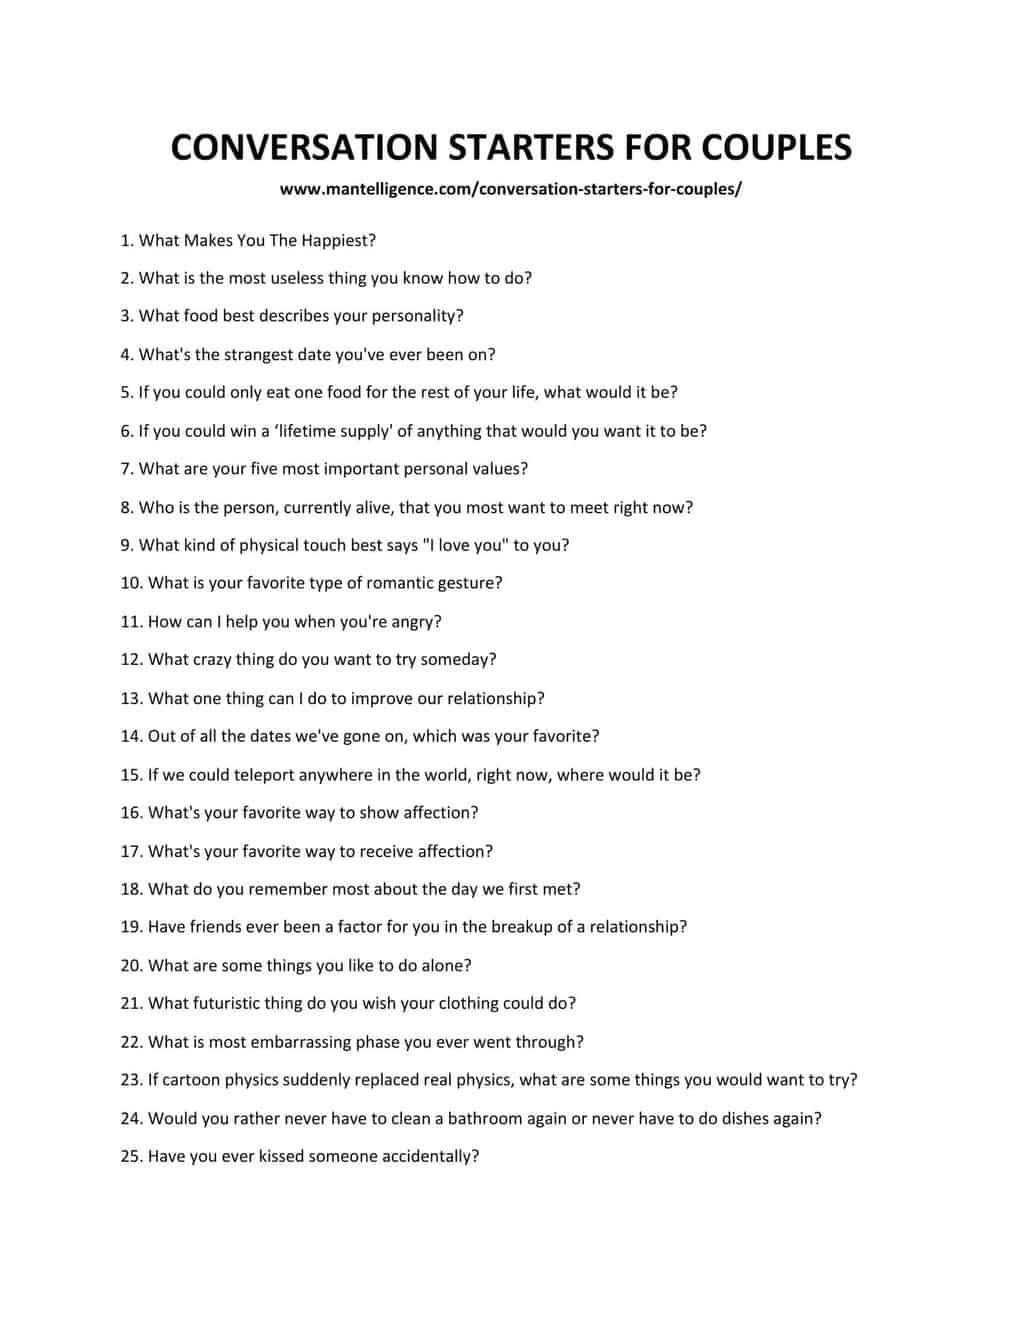 CONVERSATION STARTERS FOR COUPLES-1